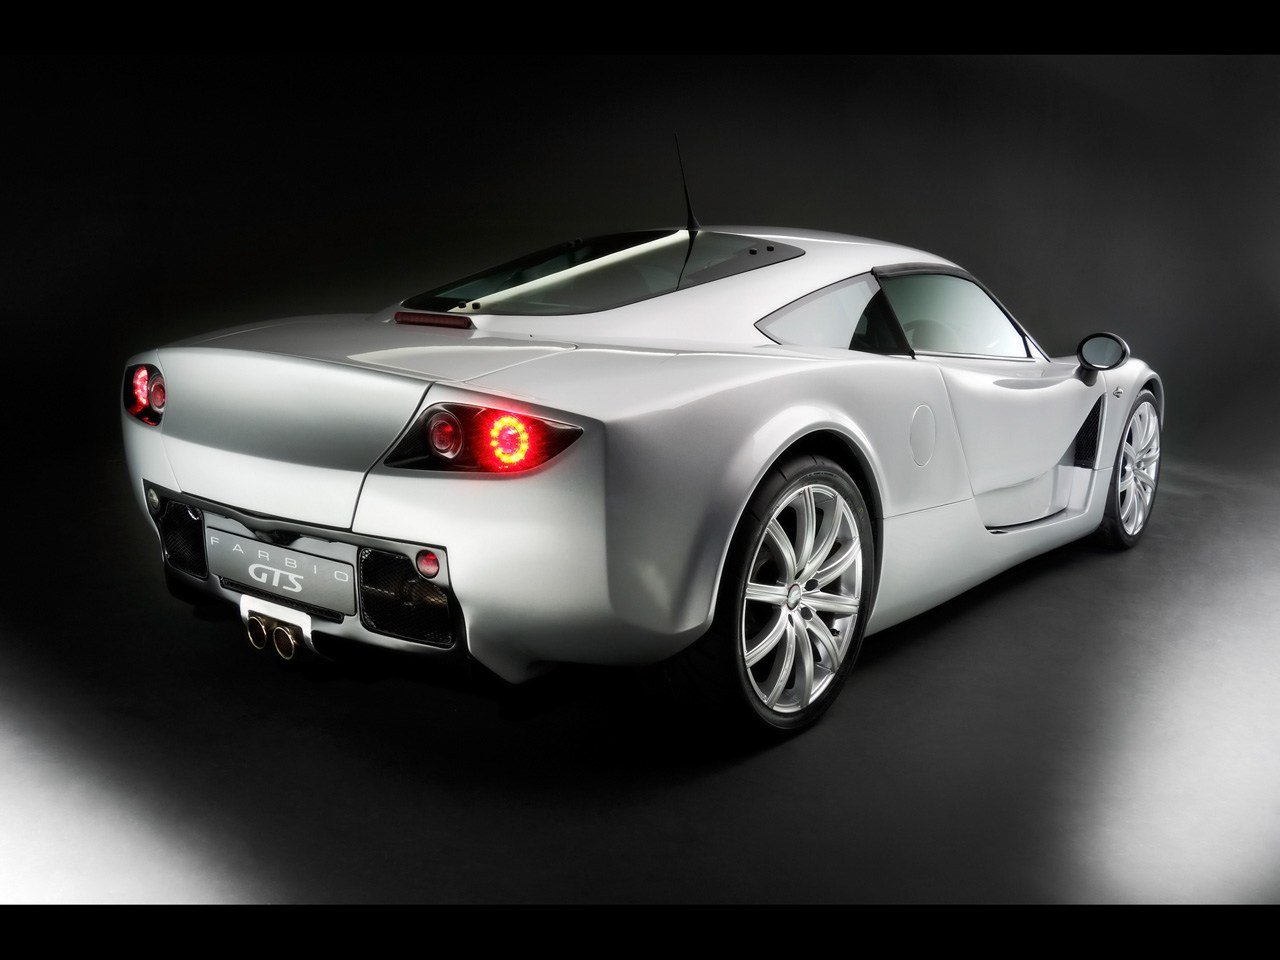 New Only Cars Farbio Cars On This Month